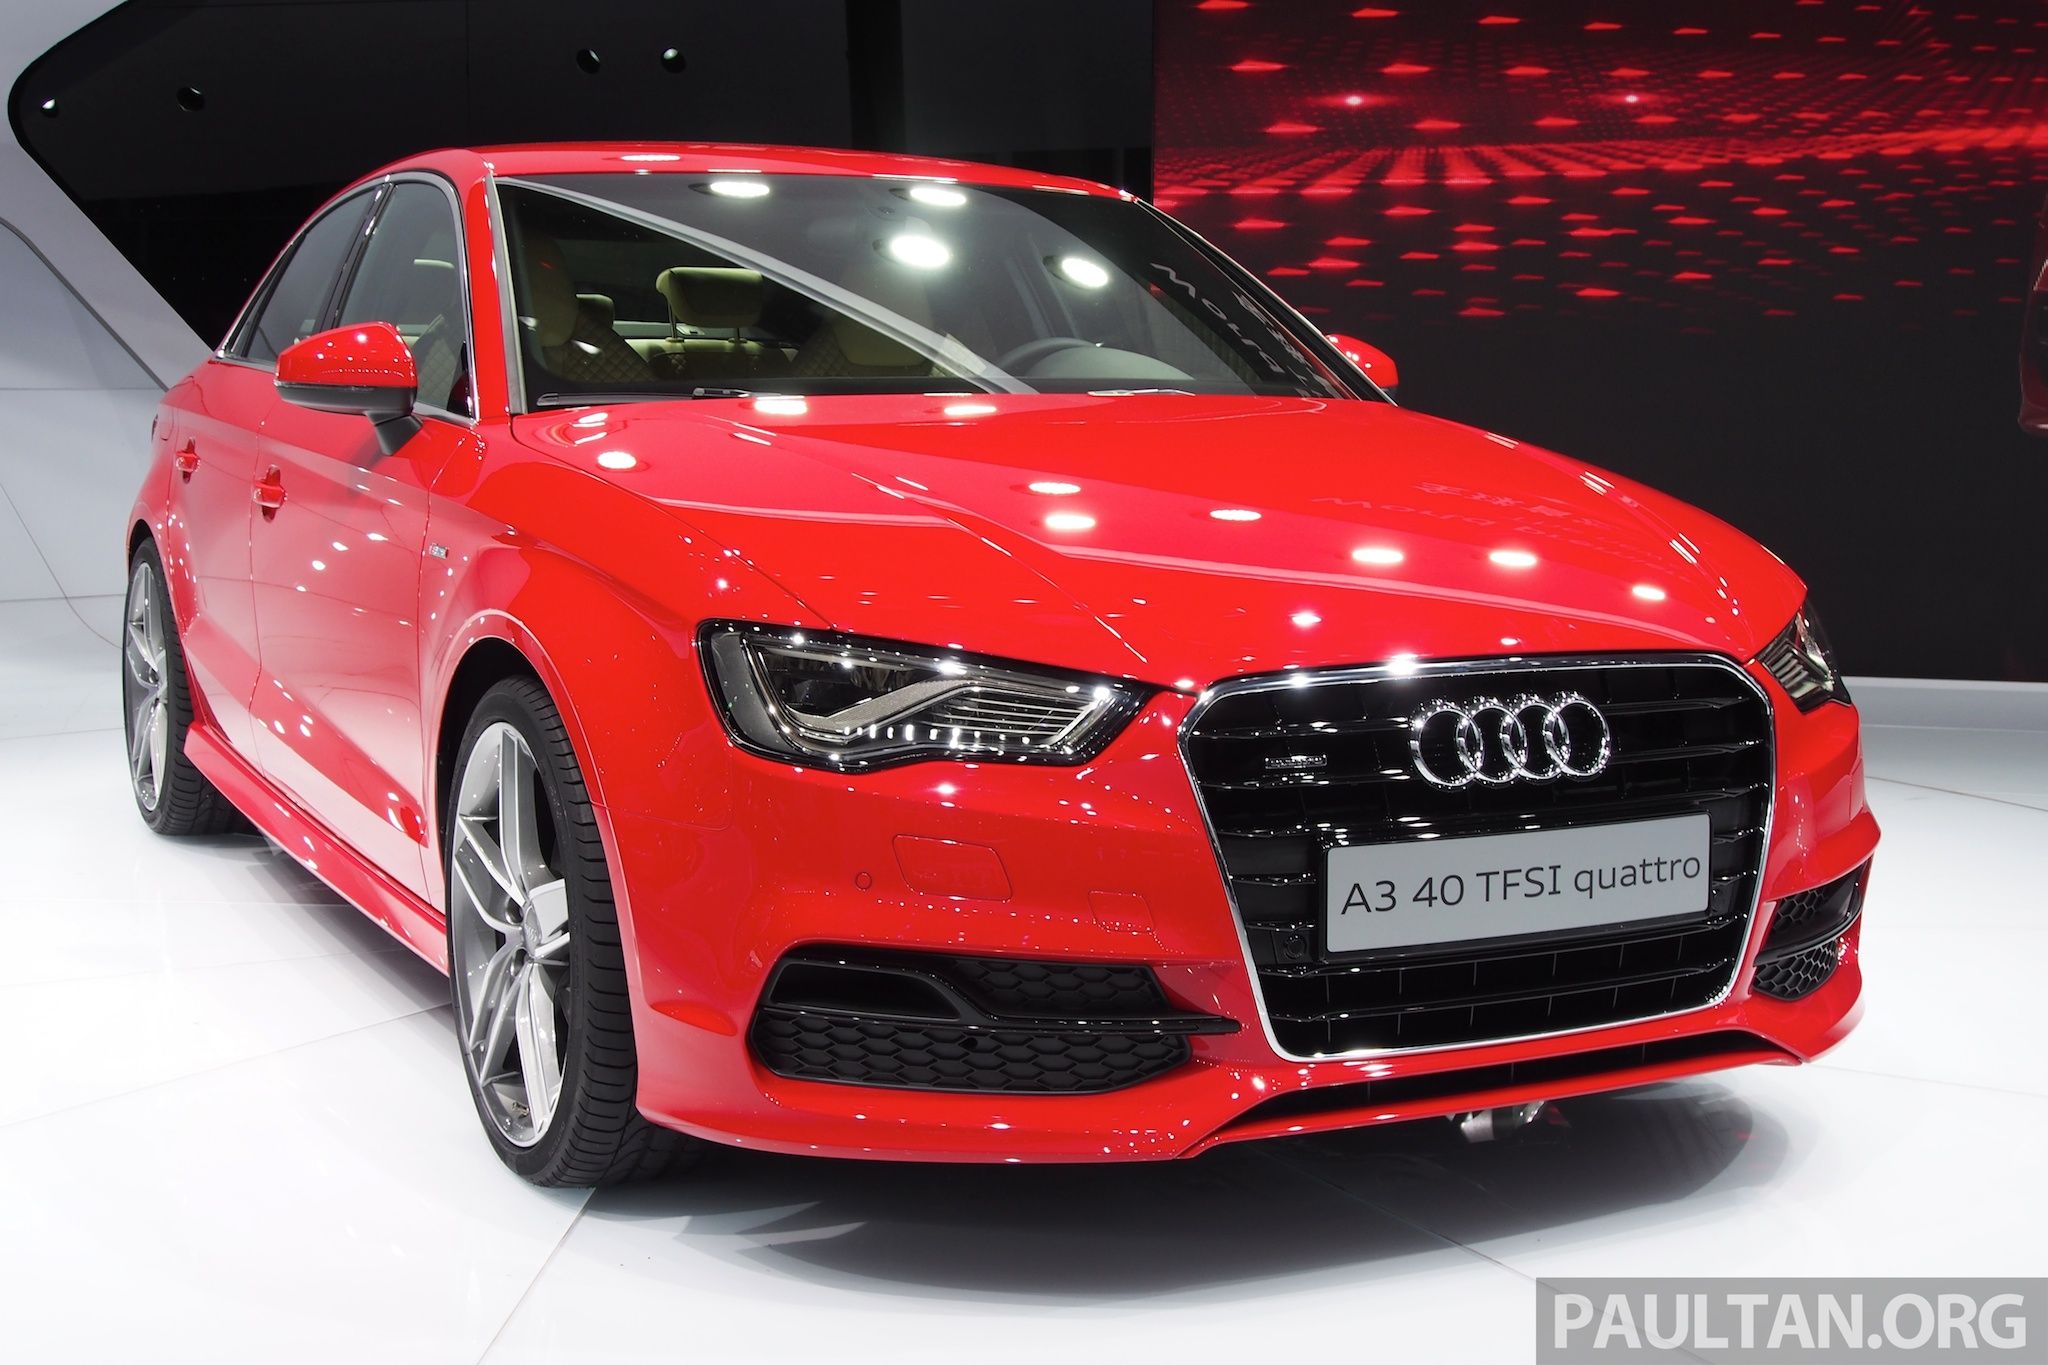 Shanghai 2013 Audi A3 Sedan Makes Public Debut Image 170727